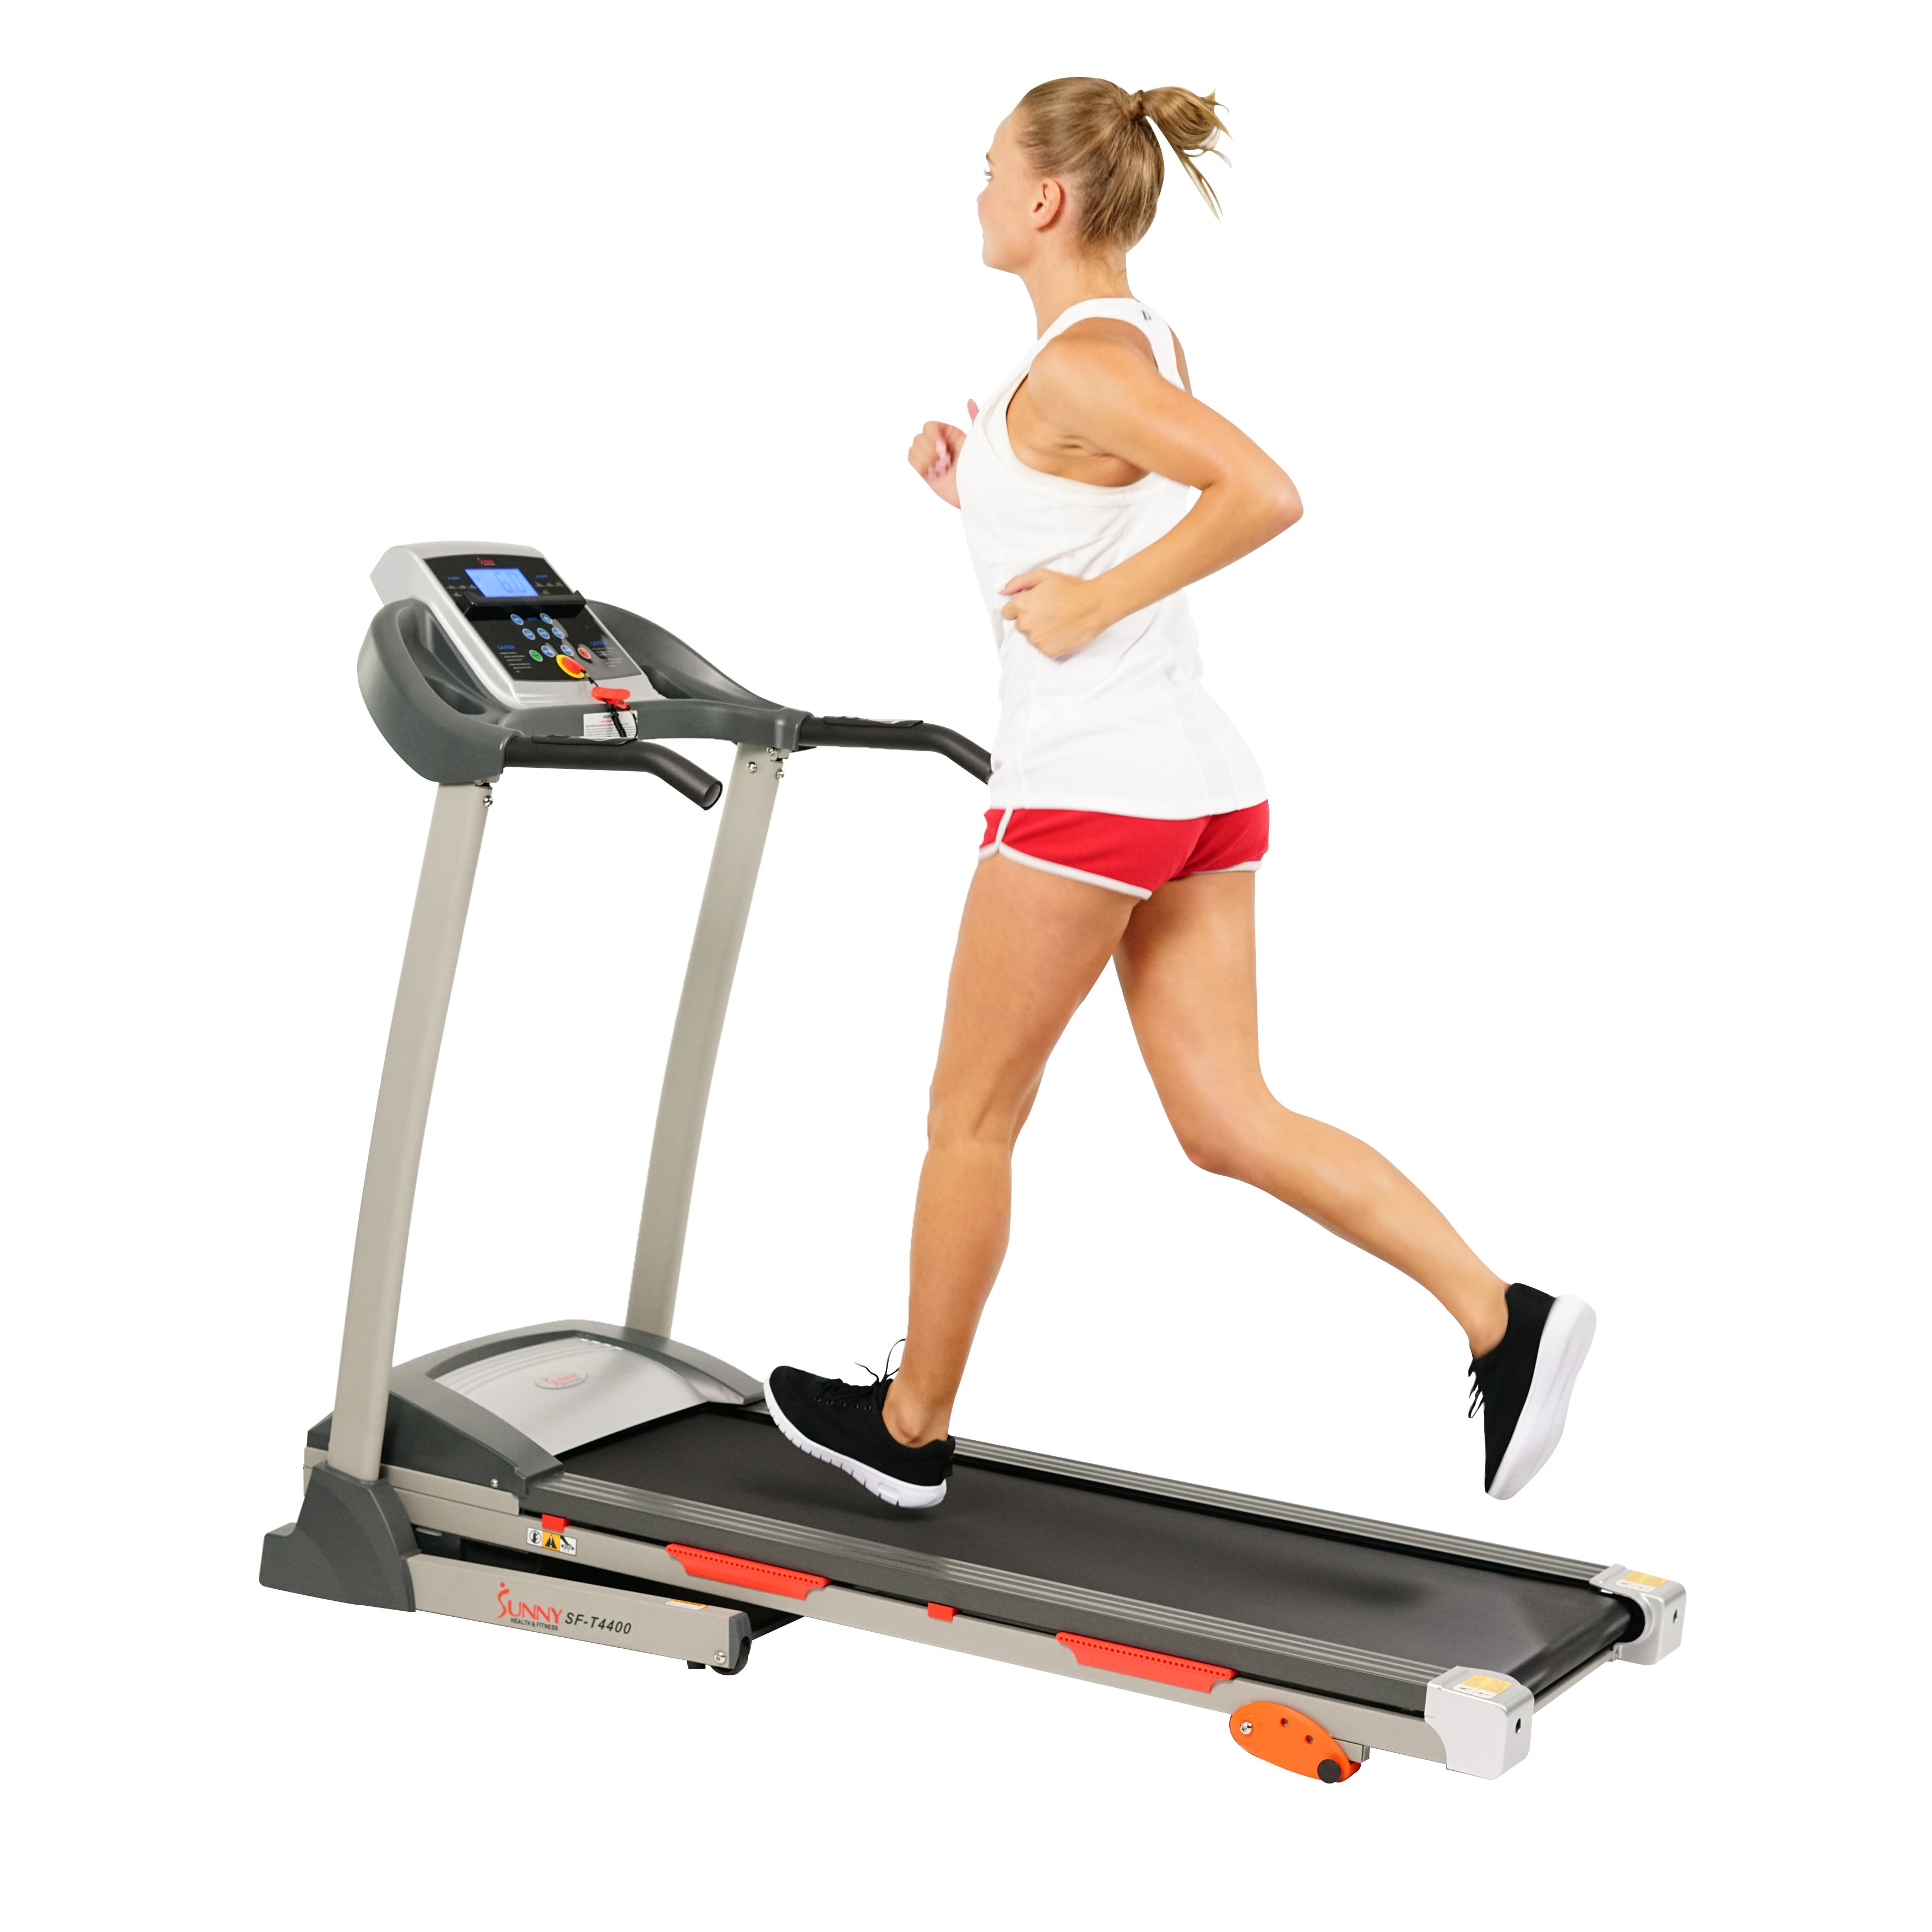 Sunny Health & Fitness SF-T4400 Treadmill w/ Manual Incline and LCD Display